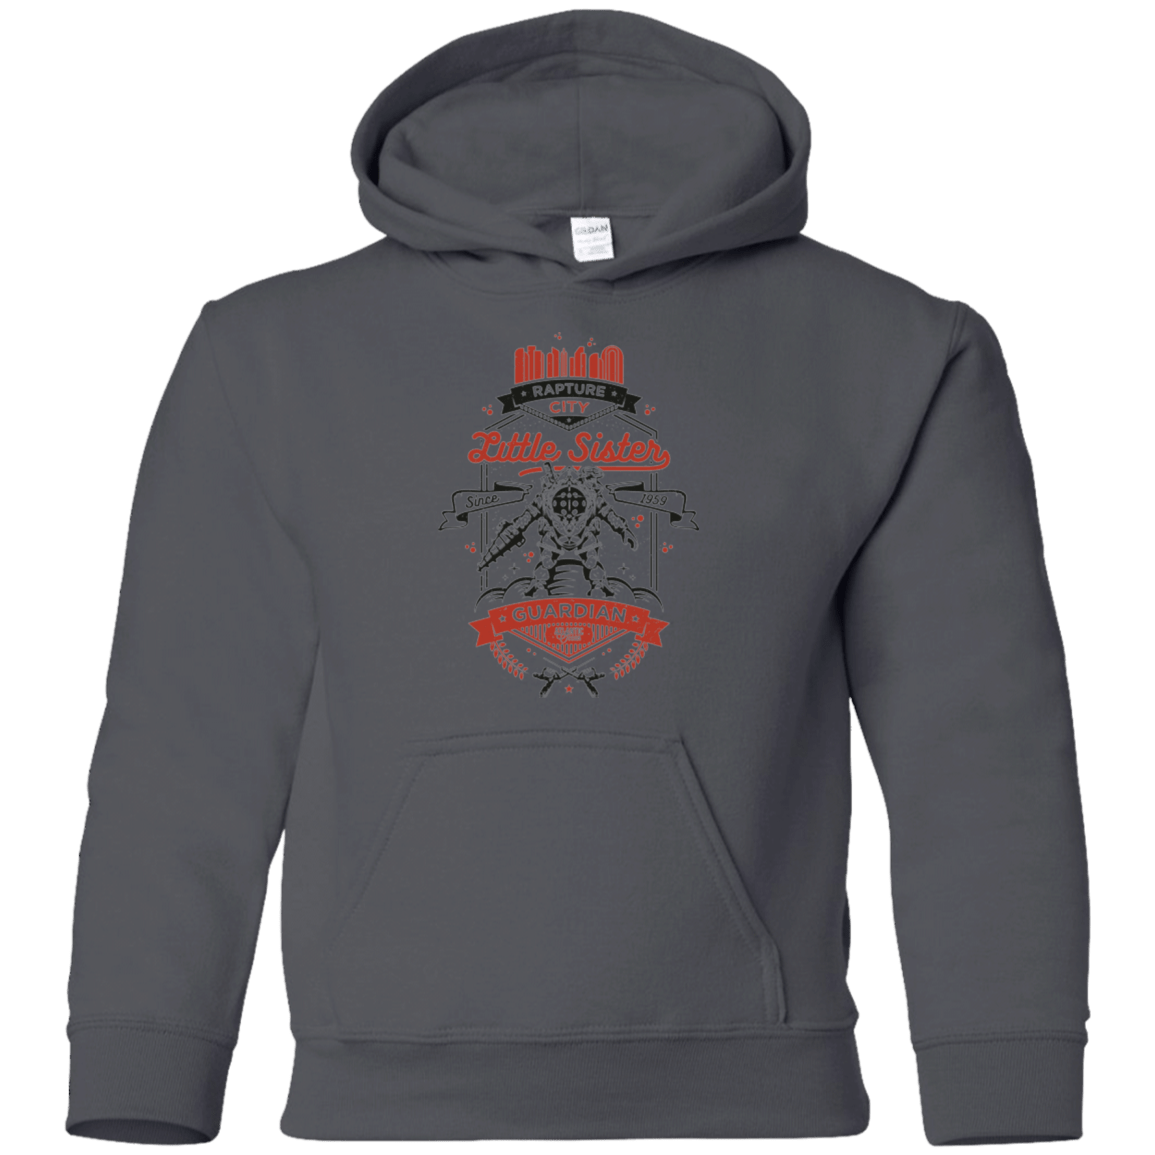 Sweatshirts Charcoal / YS Little Sister Protector V2 Youth Hoodie